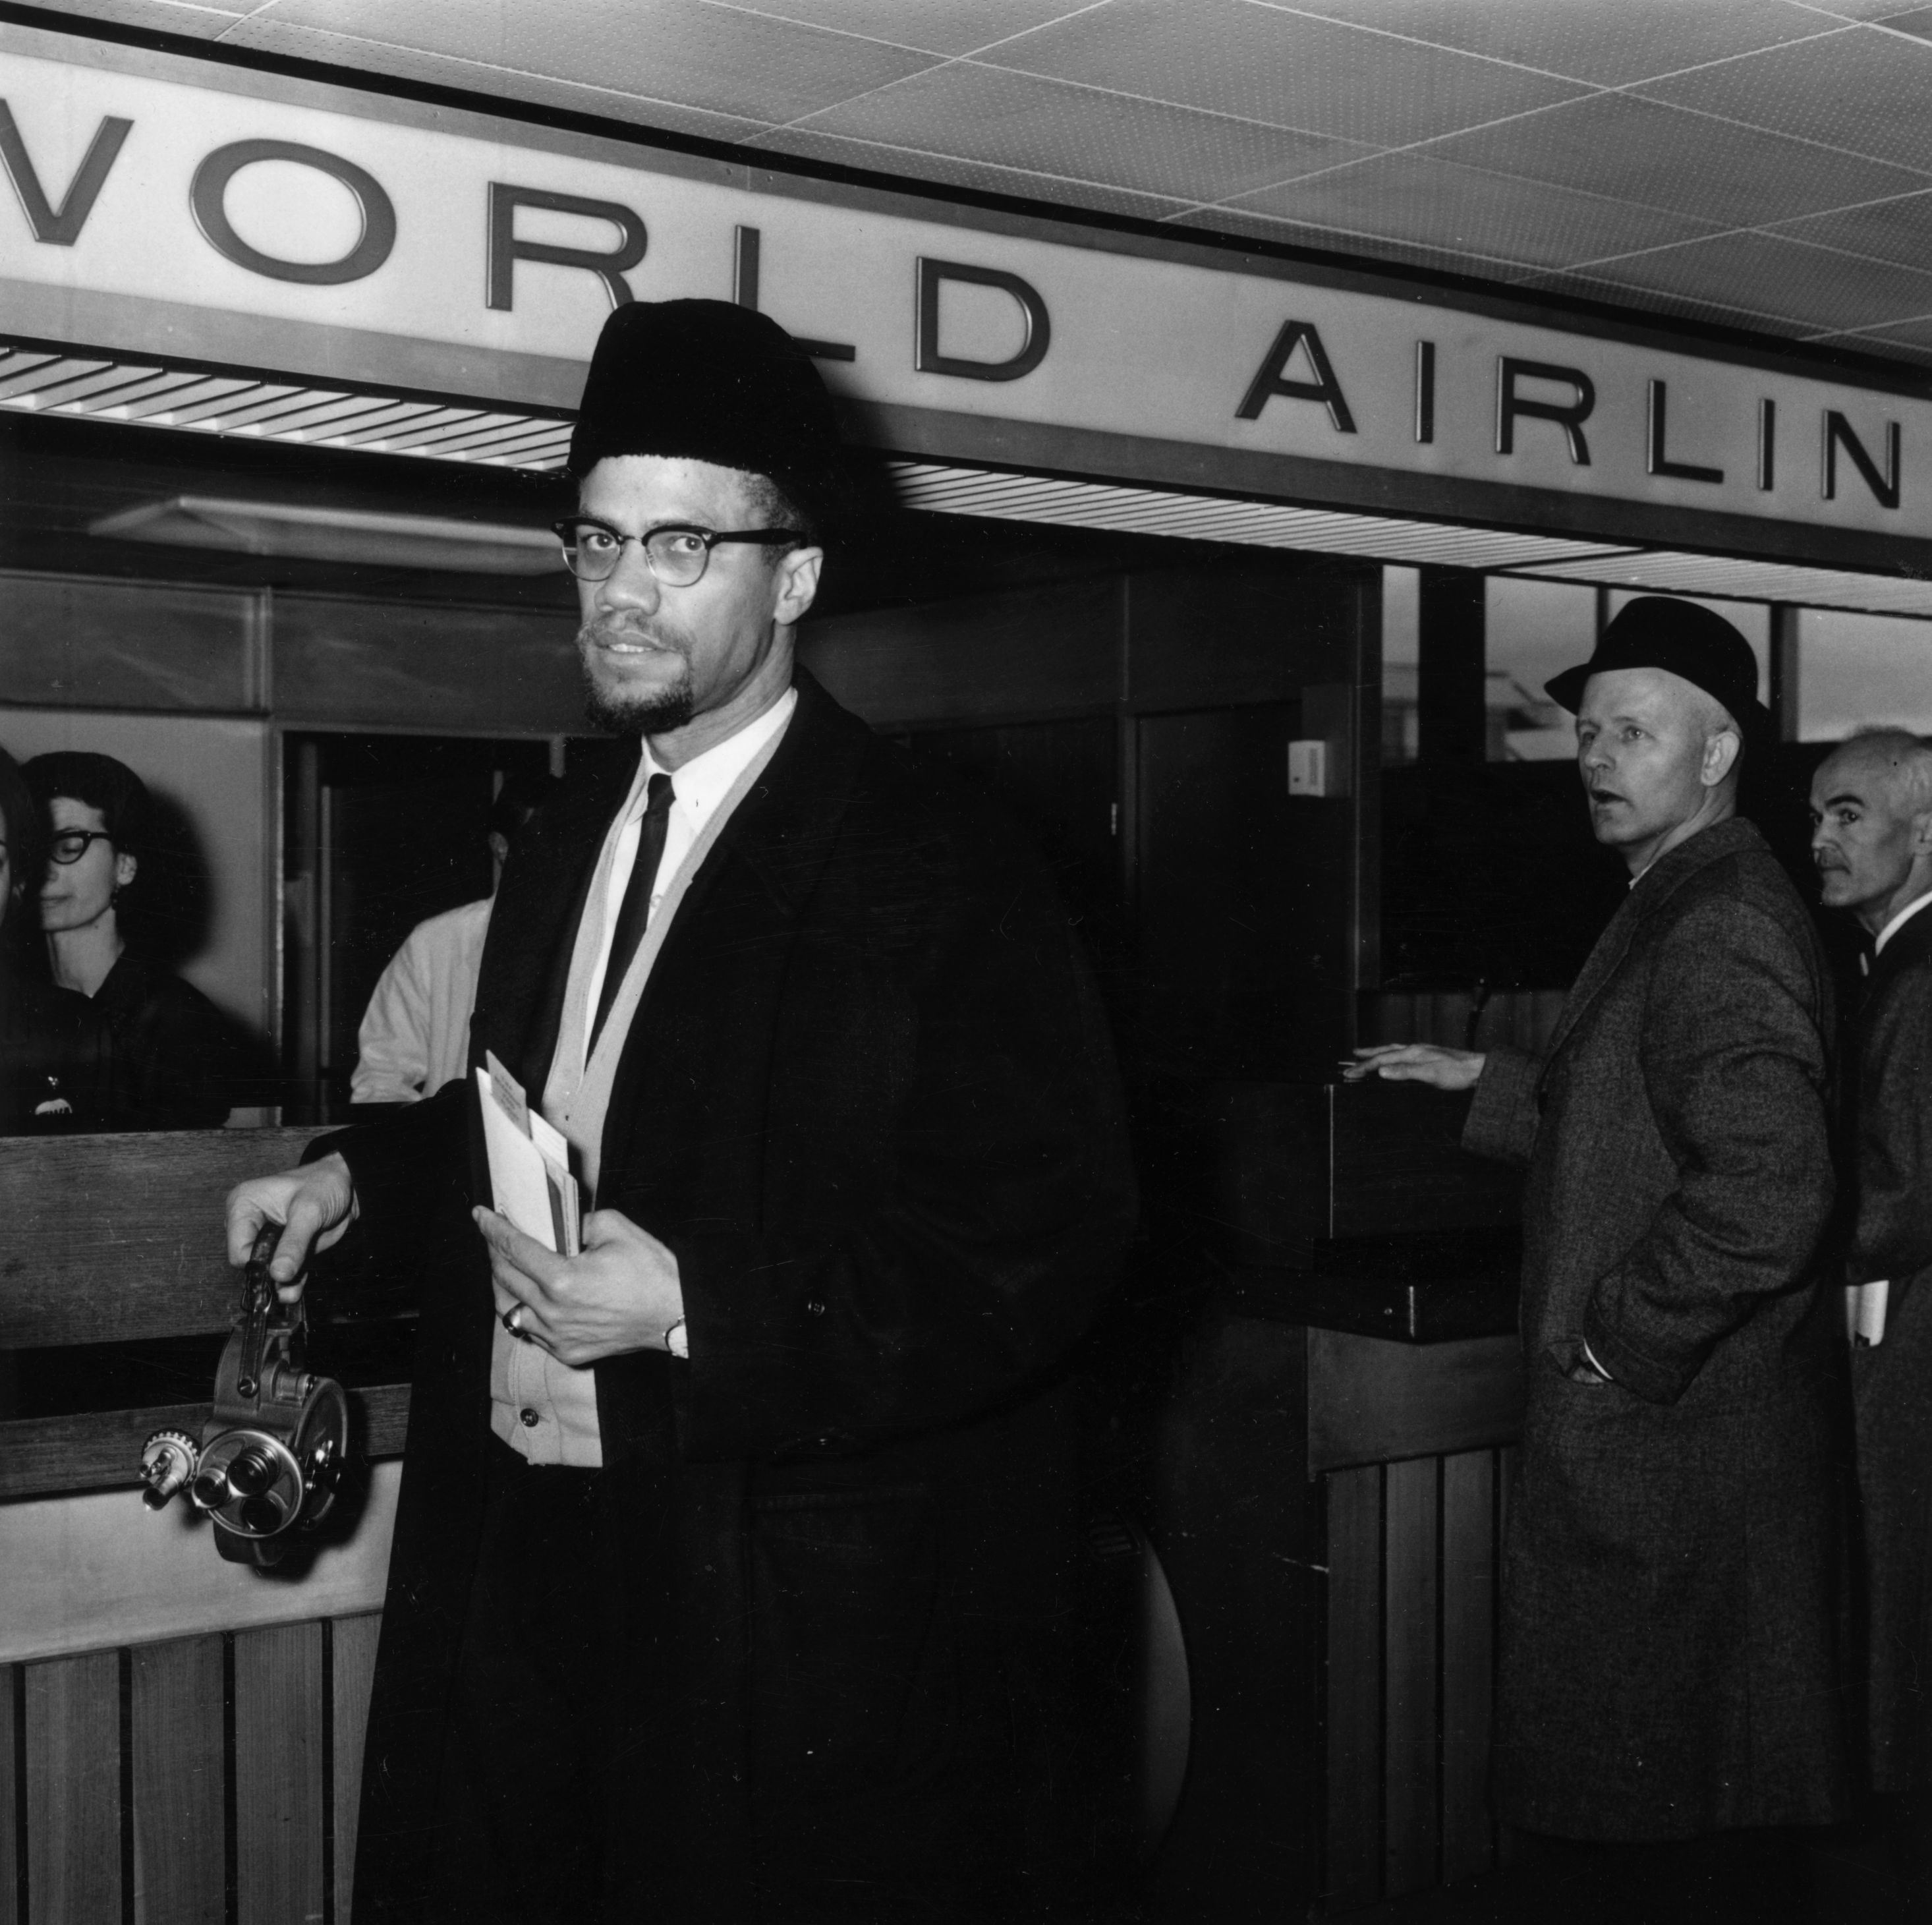 Malcolm X Assassination Facts 5 Things To Know About Civil Rights Icon S Murder 52 Years Ago